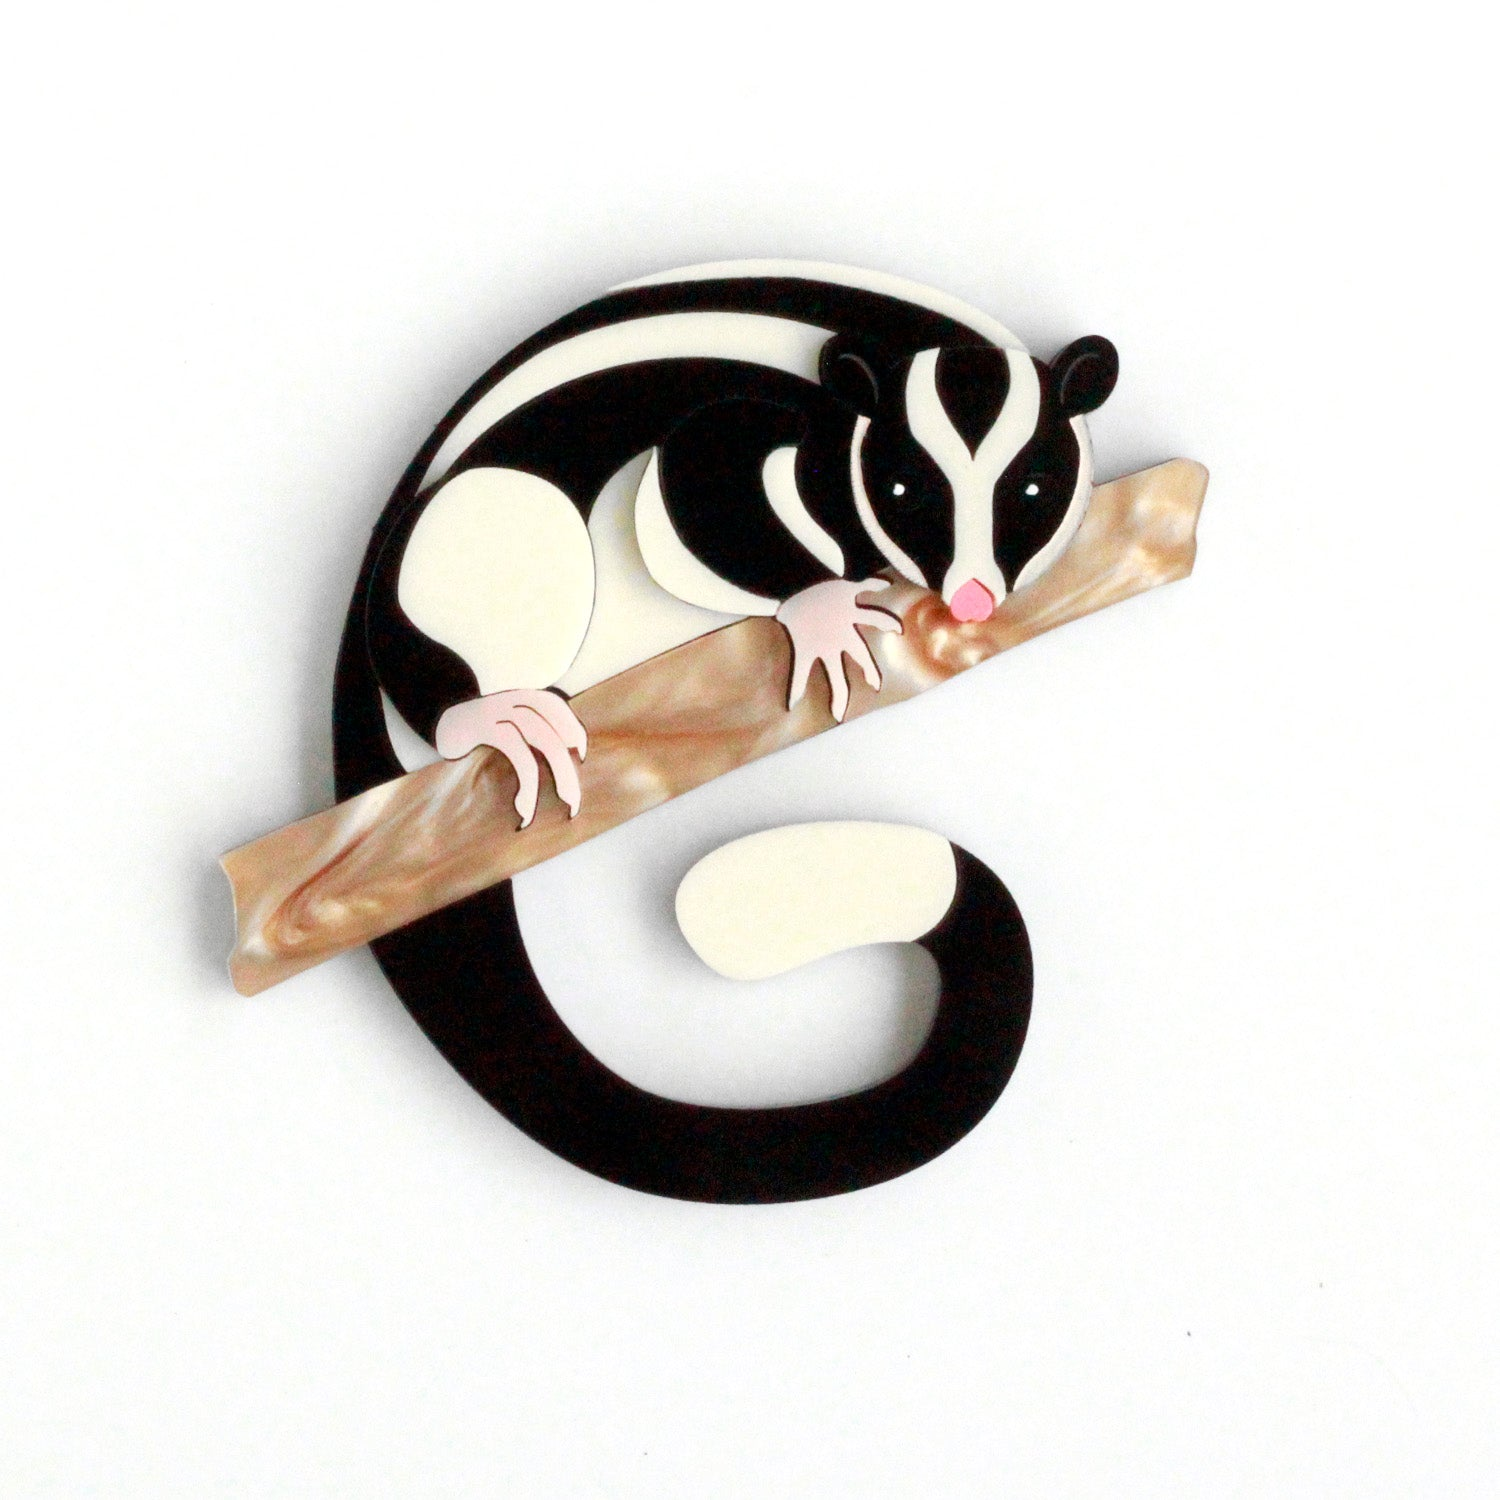 Preorder Peggy the Striped Possum brooch